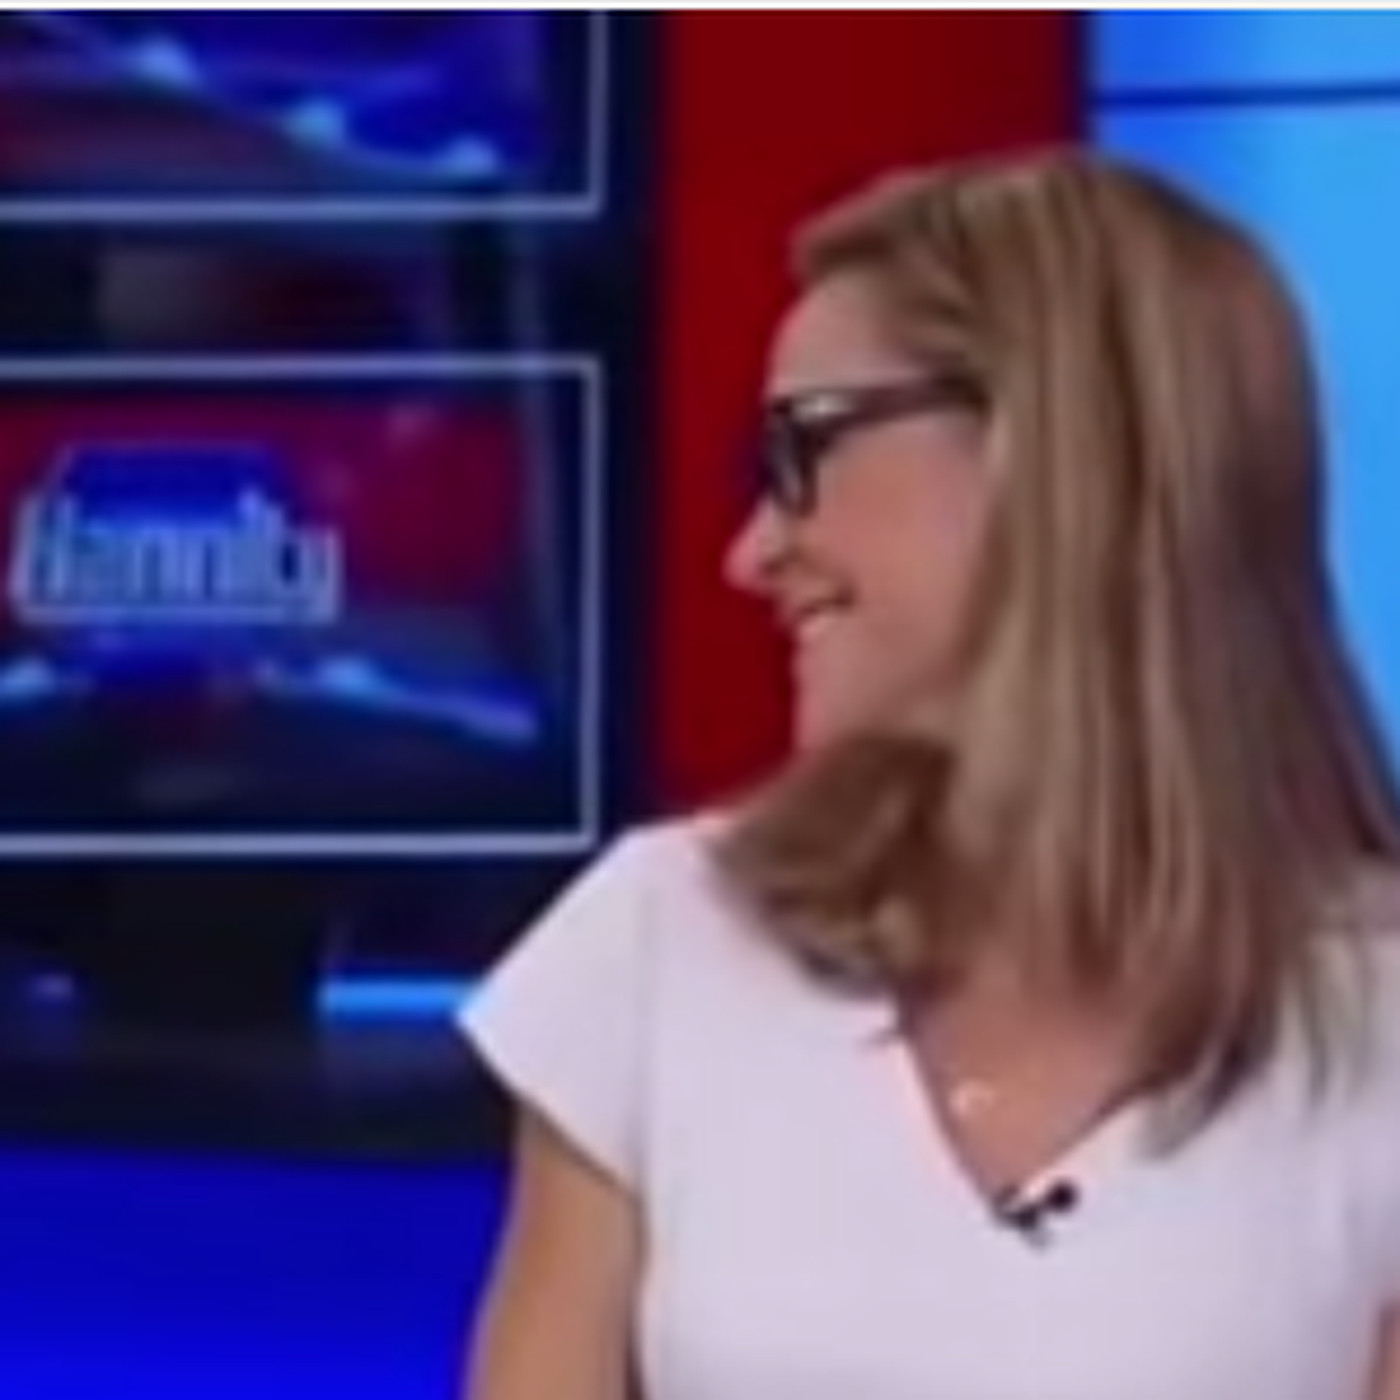 The Fox News rules for how to treat women, in one infuriating video - Vox